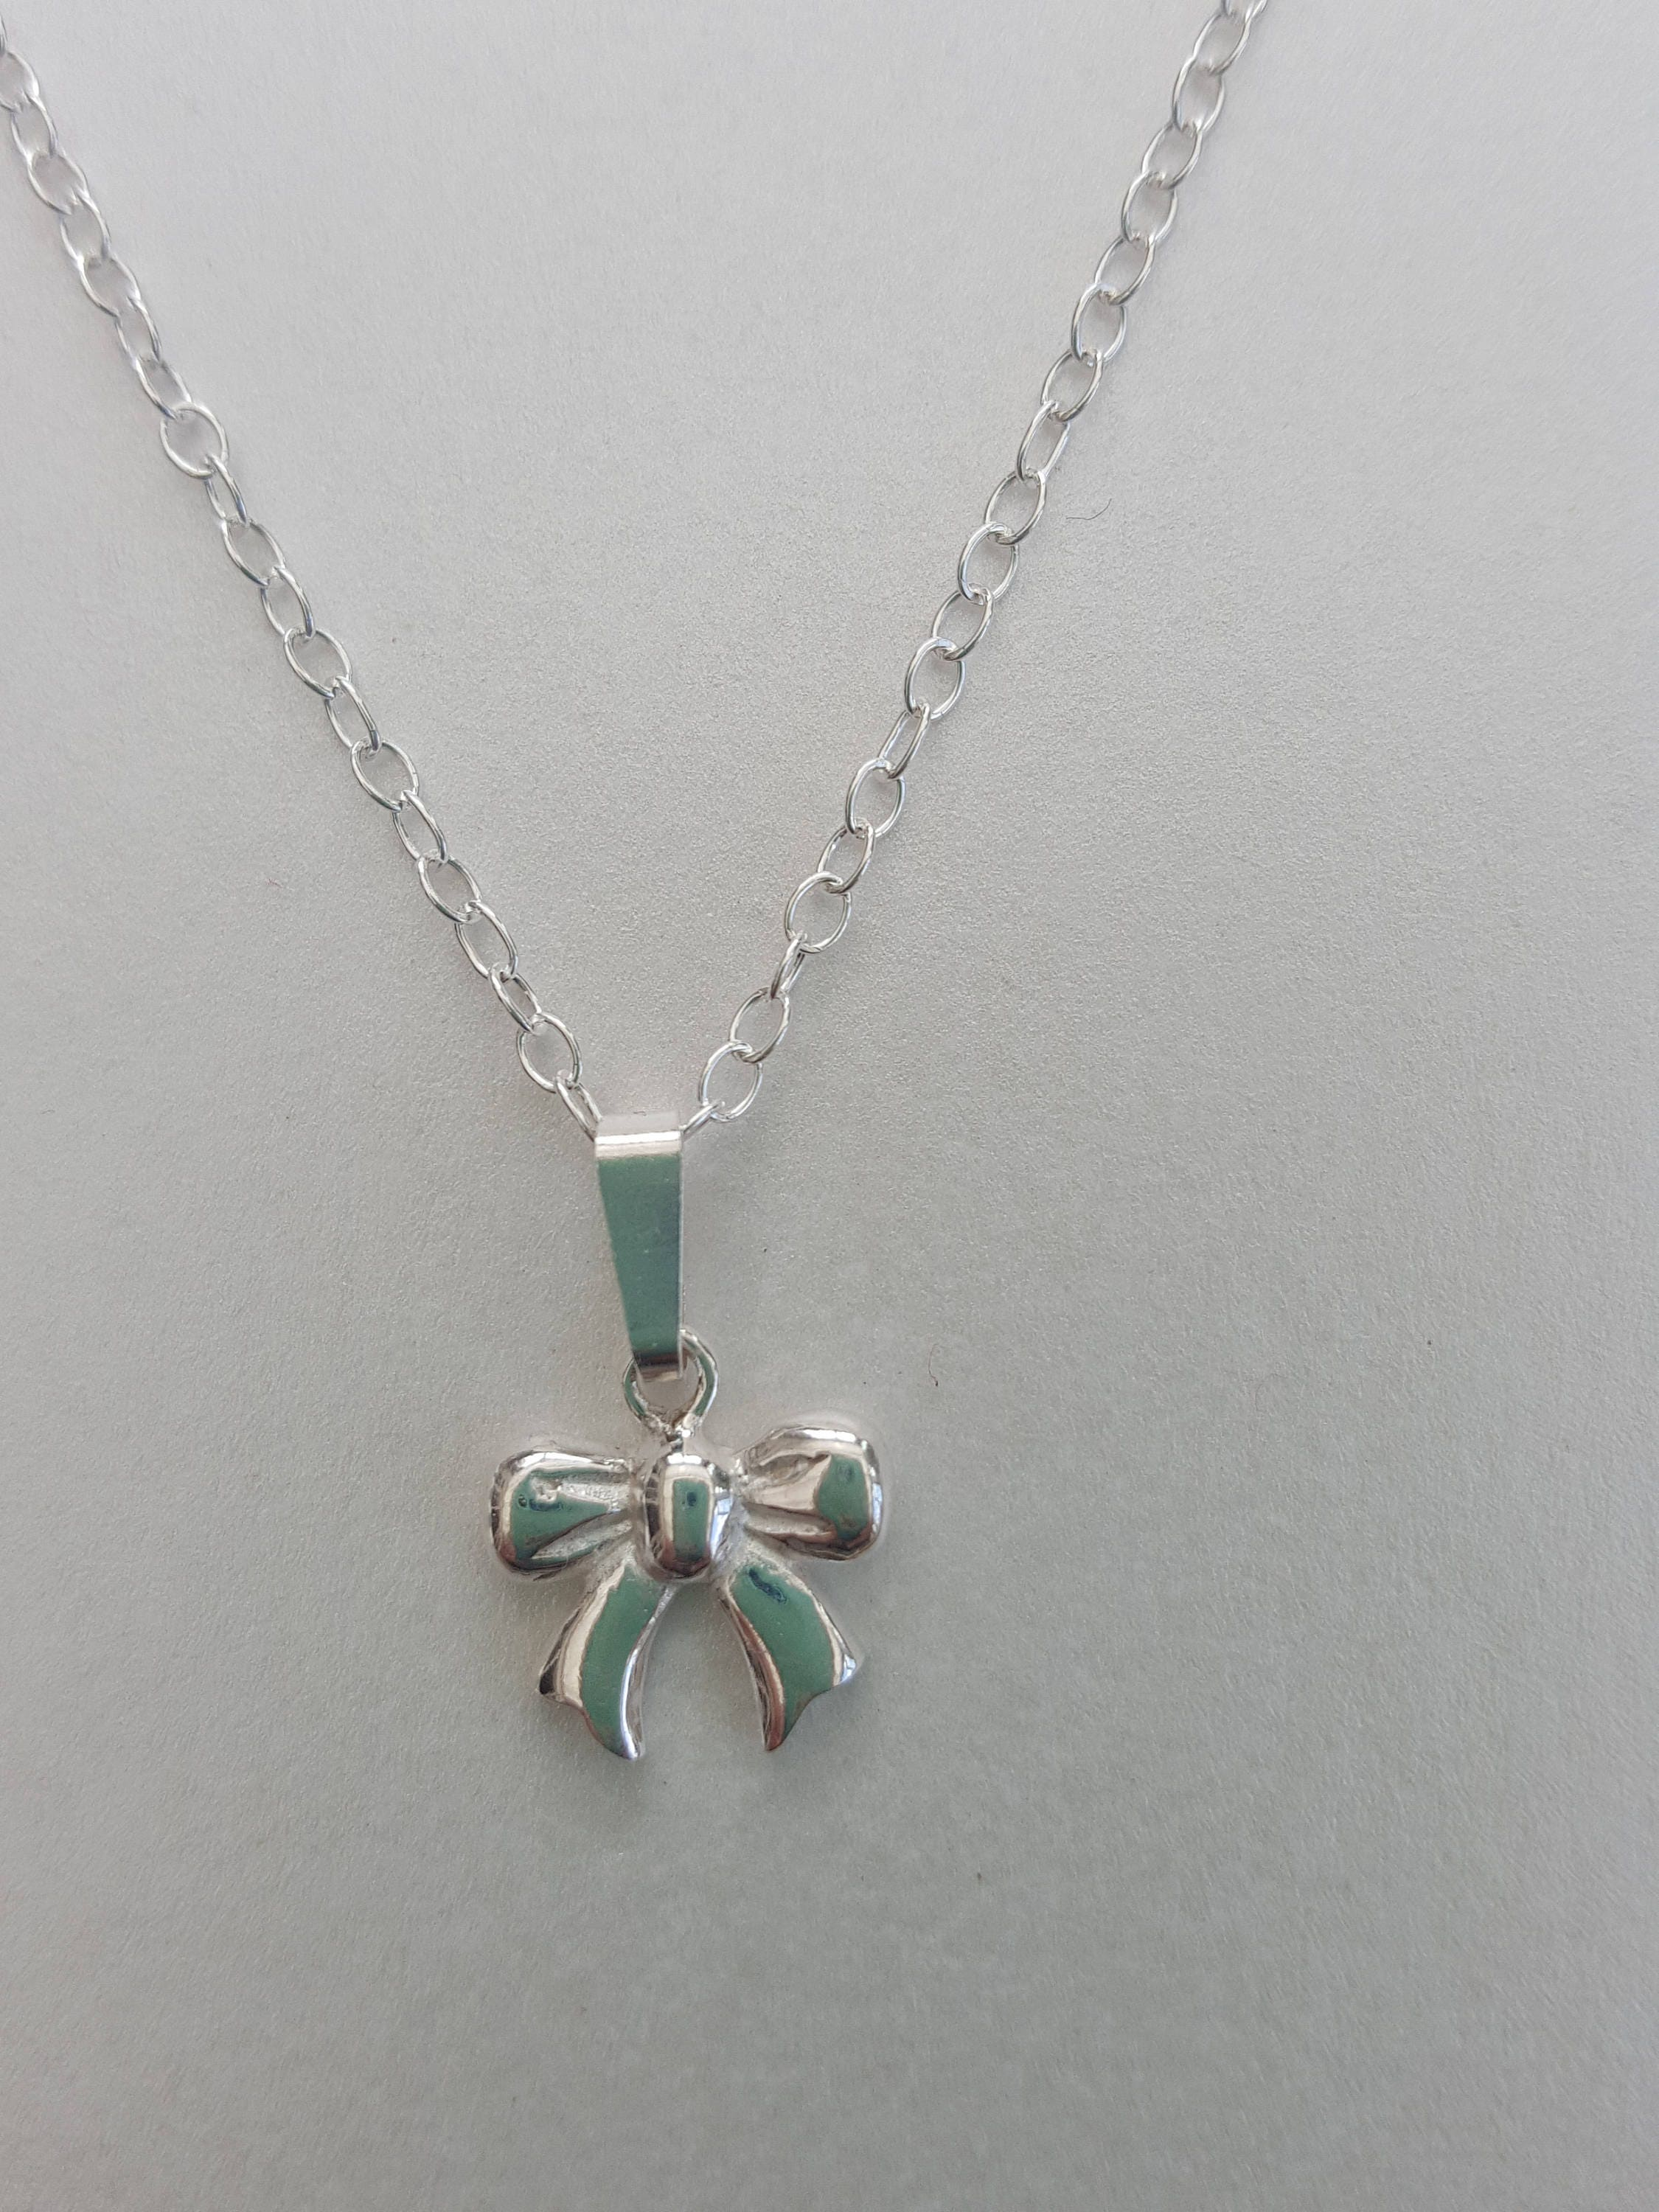 pendant featuring diamond collections motif bow graff a necklace